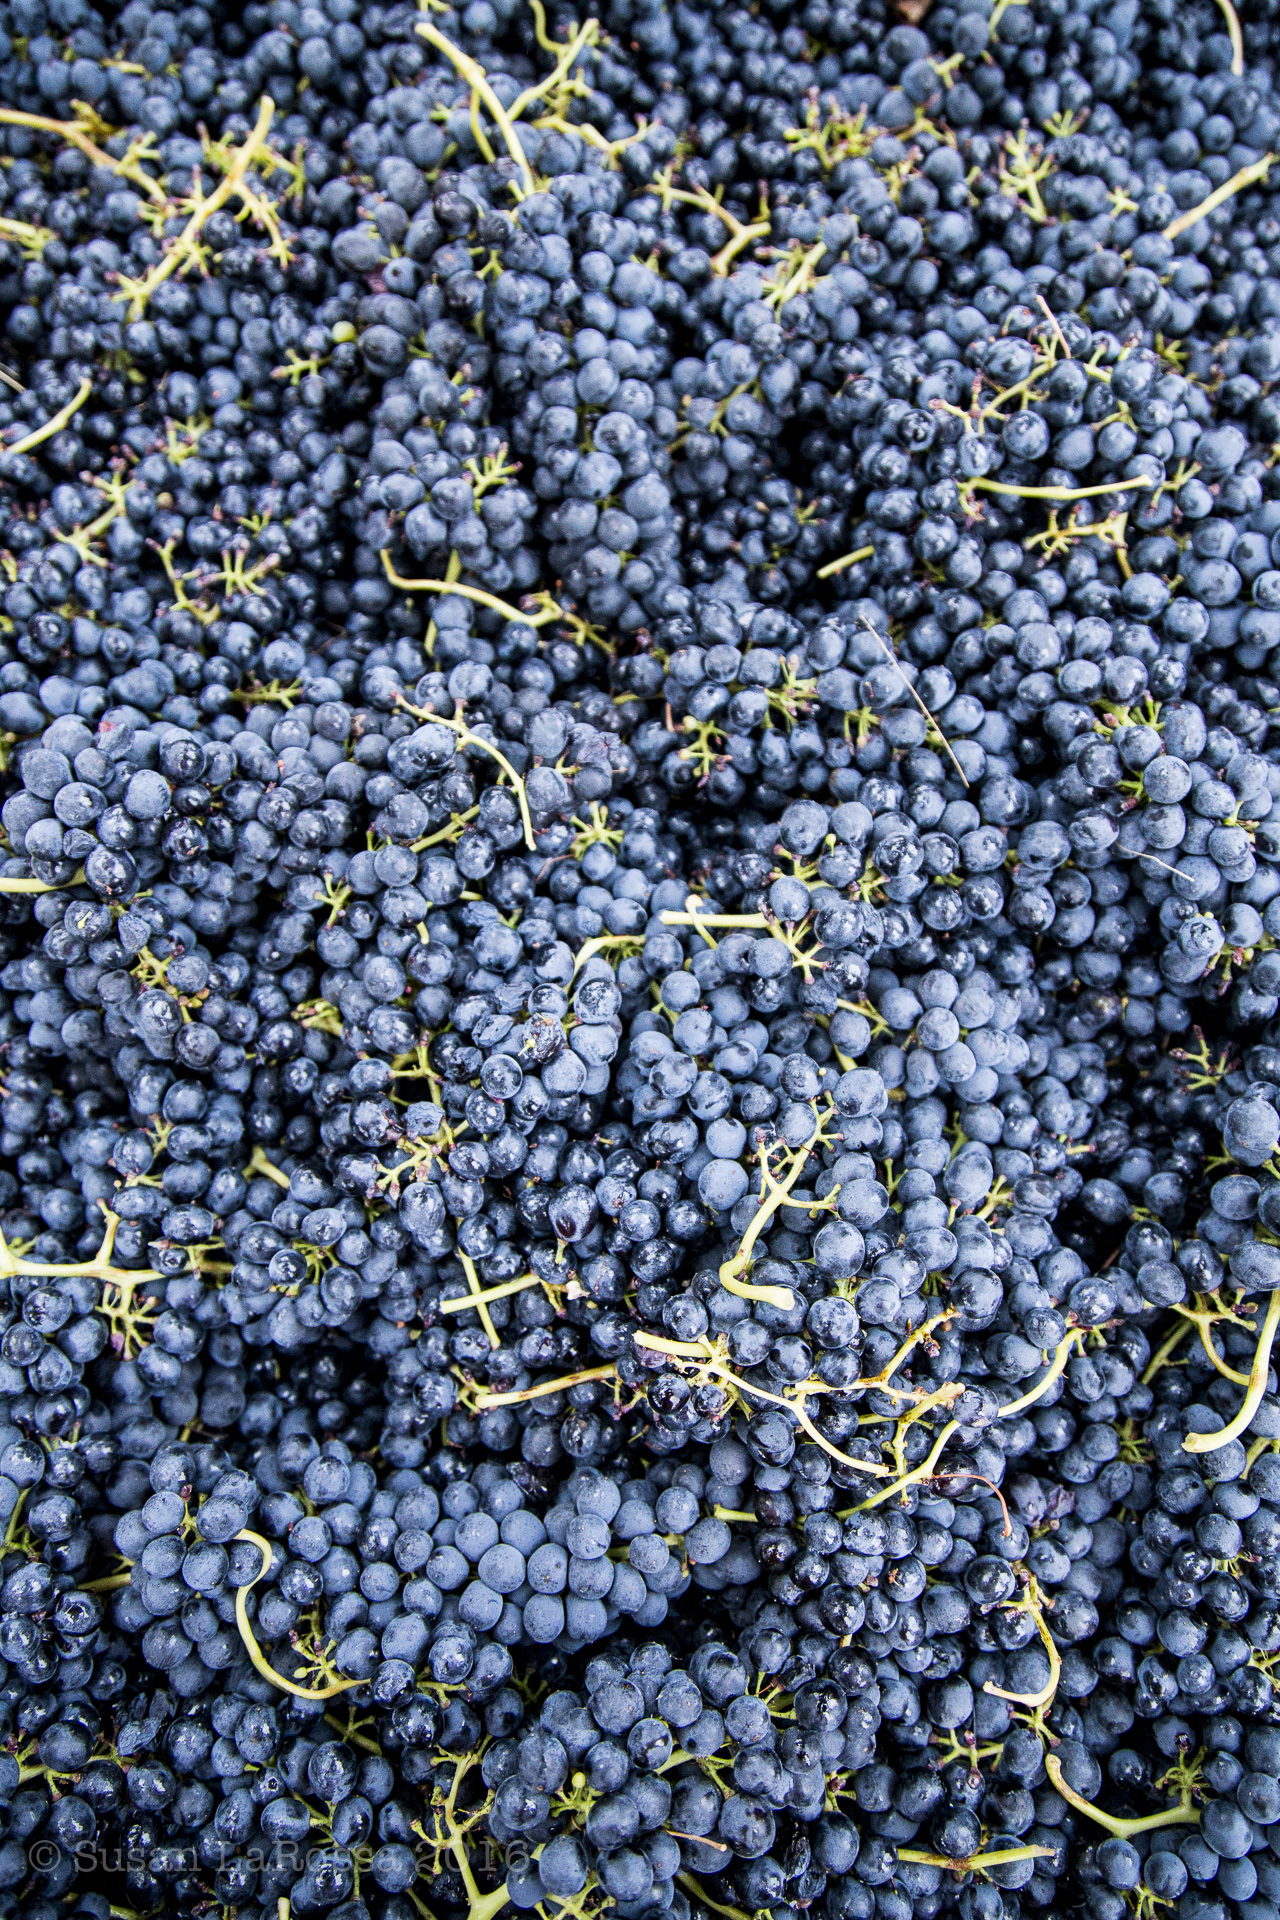 Syrah clusters that will shortly be crushed by foot